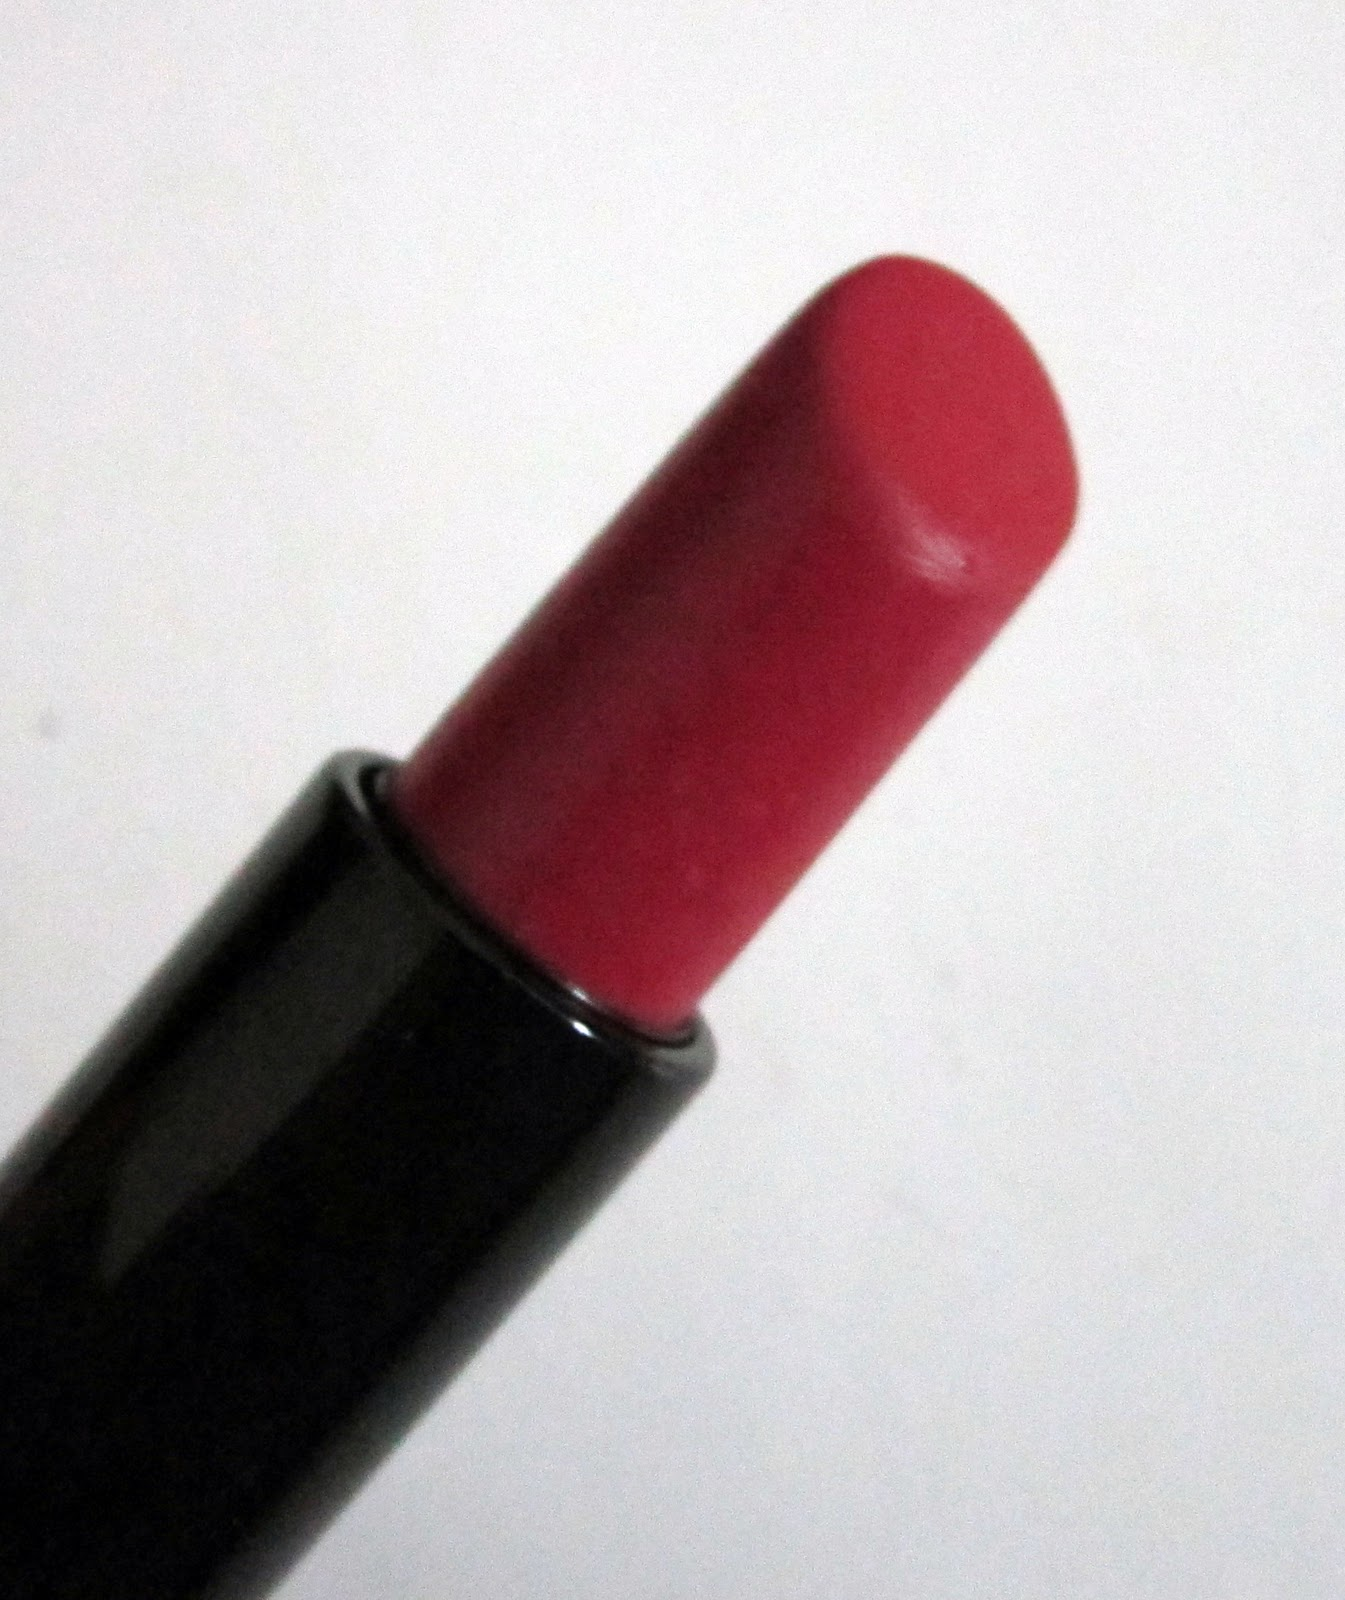 Indian Beauty Blog: Red HOT ! Deborah Milano Lipstick ...